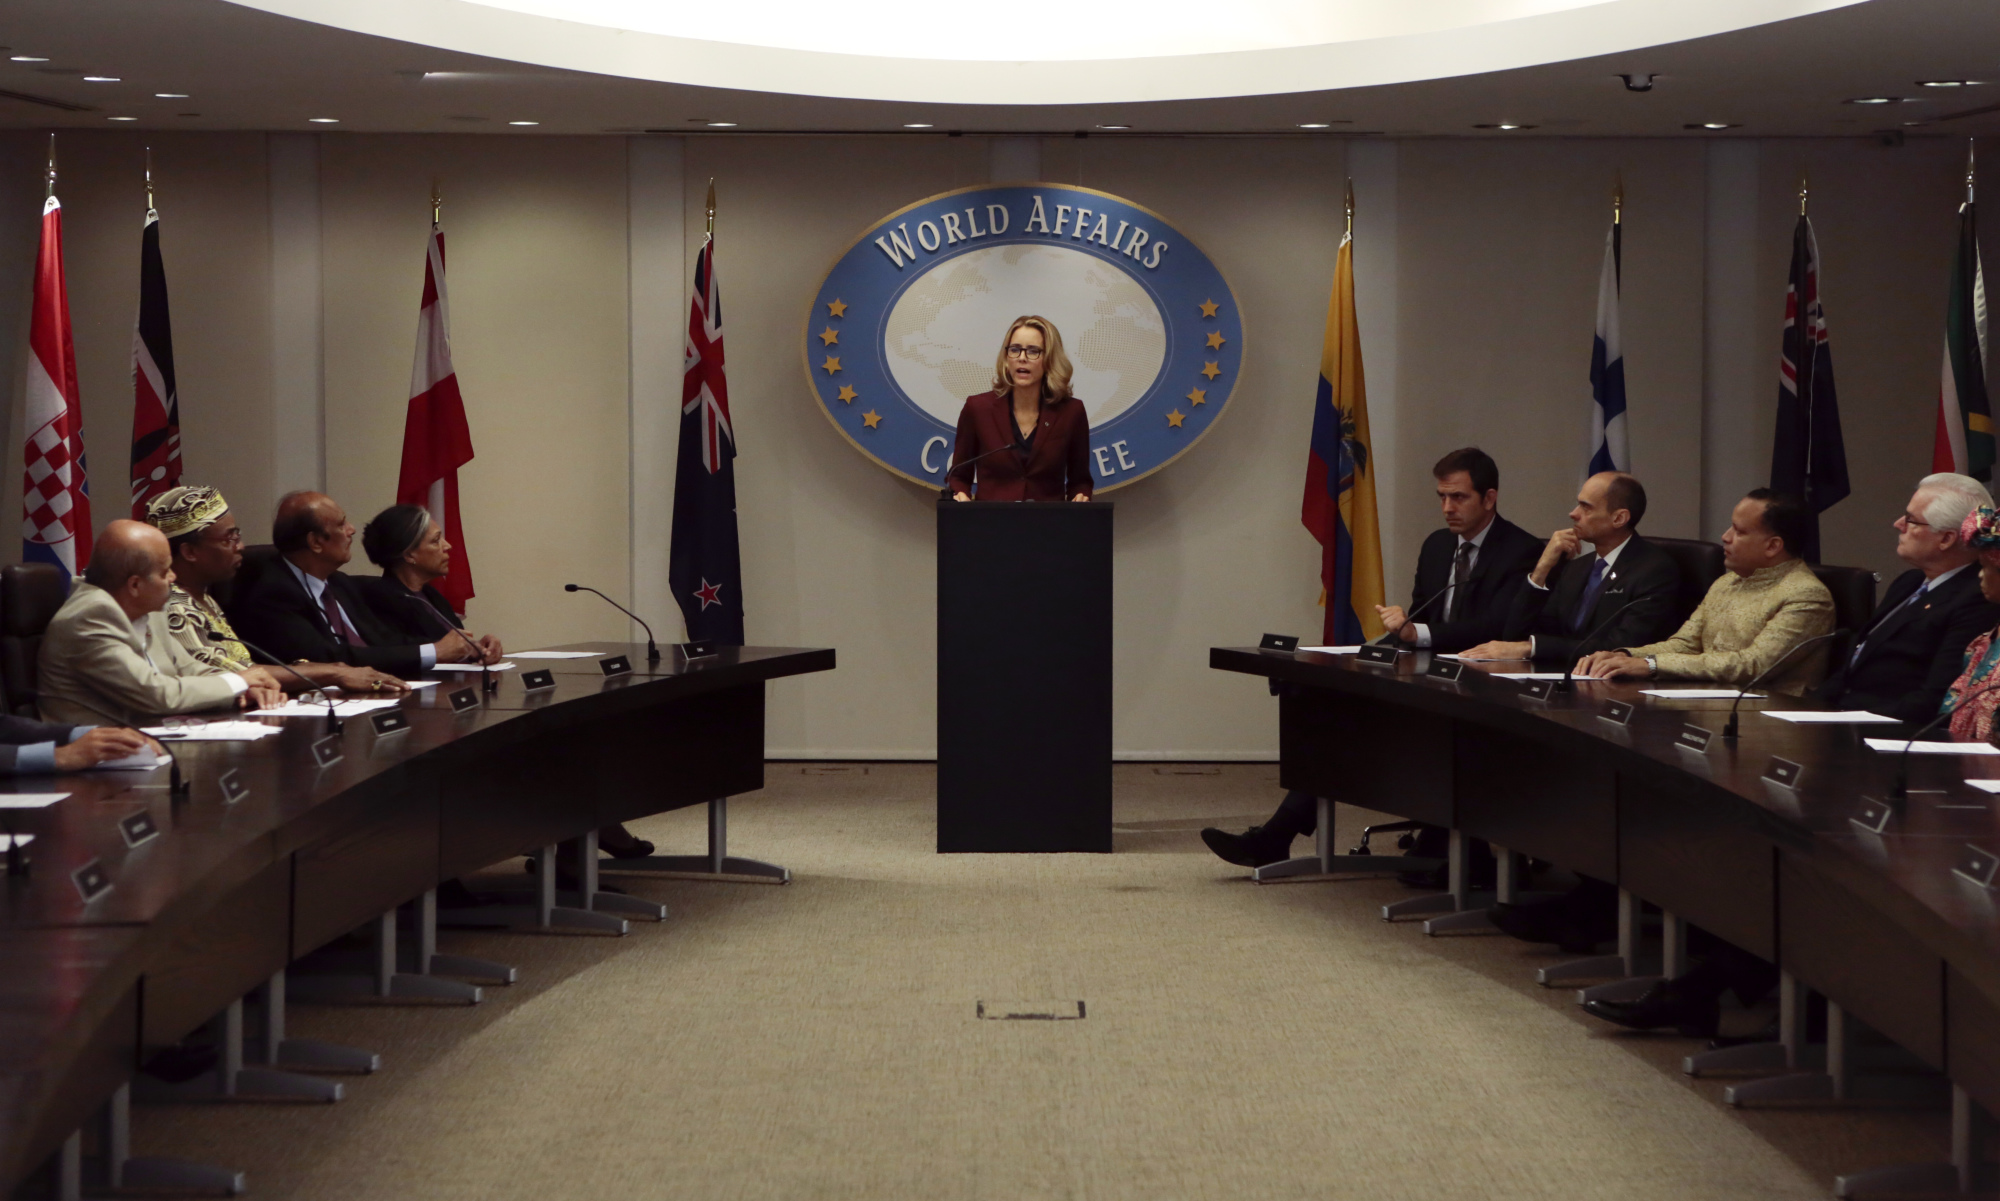 World Affairs Speech - S1E6